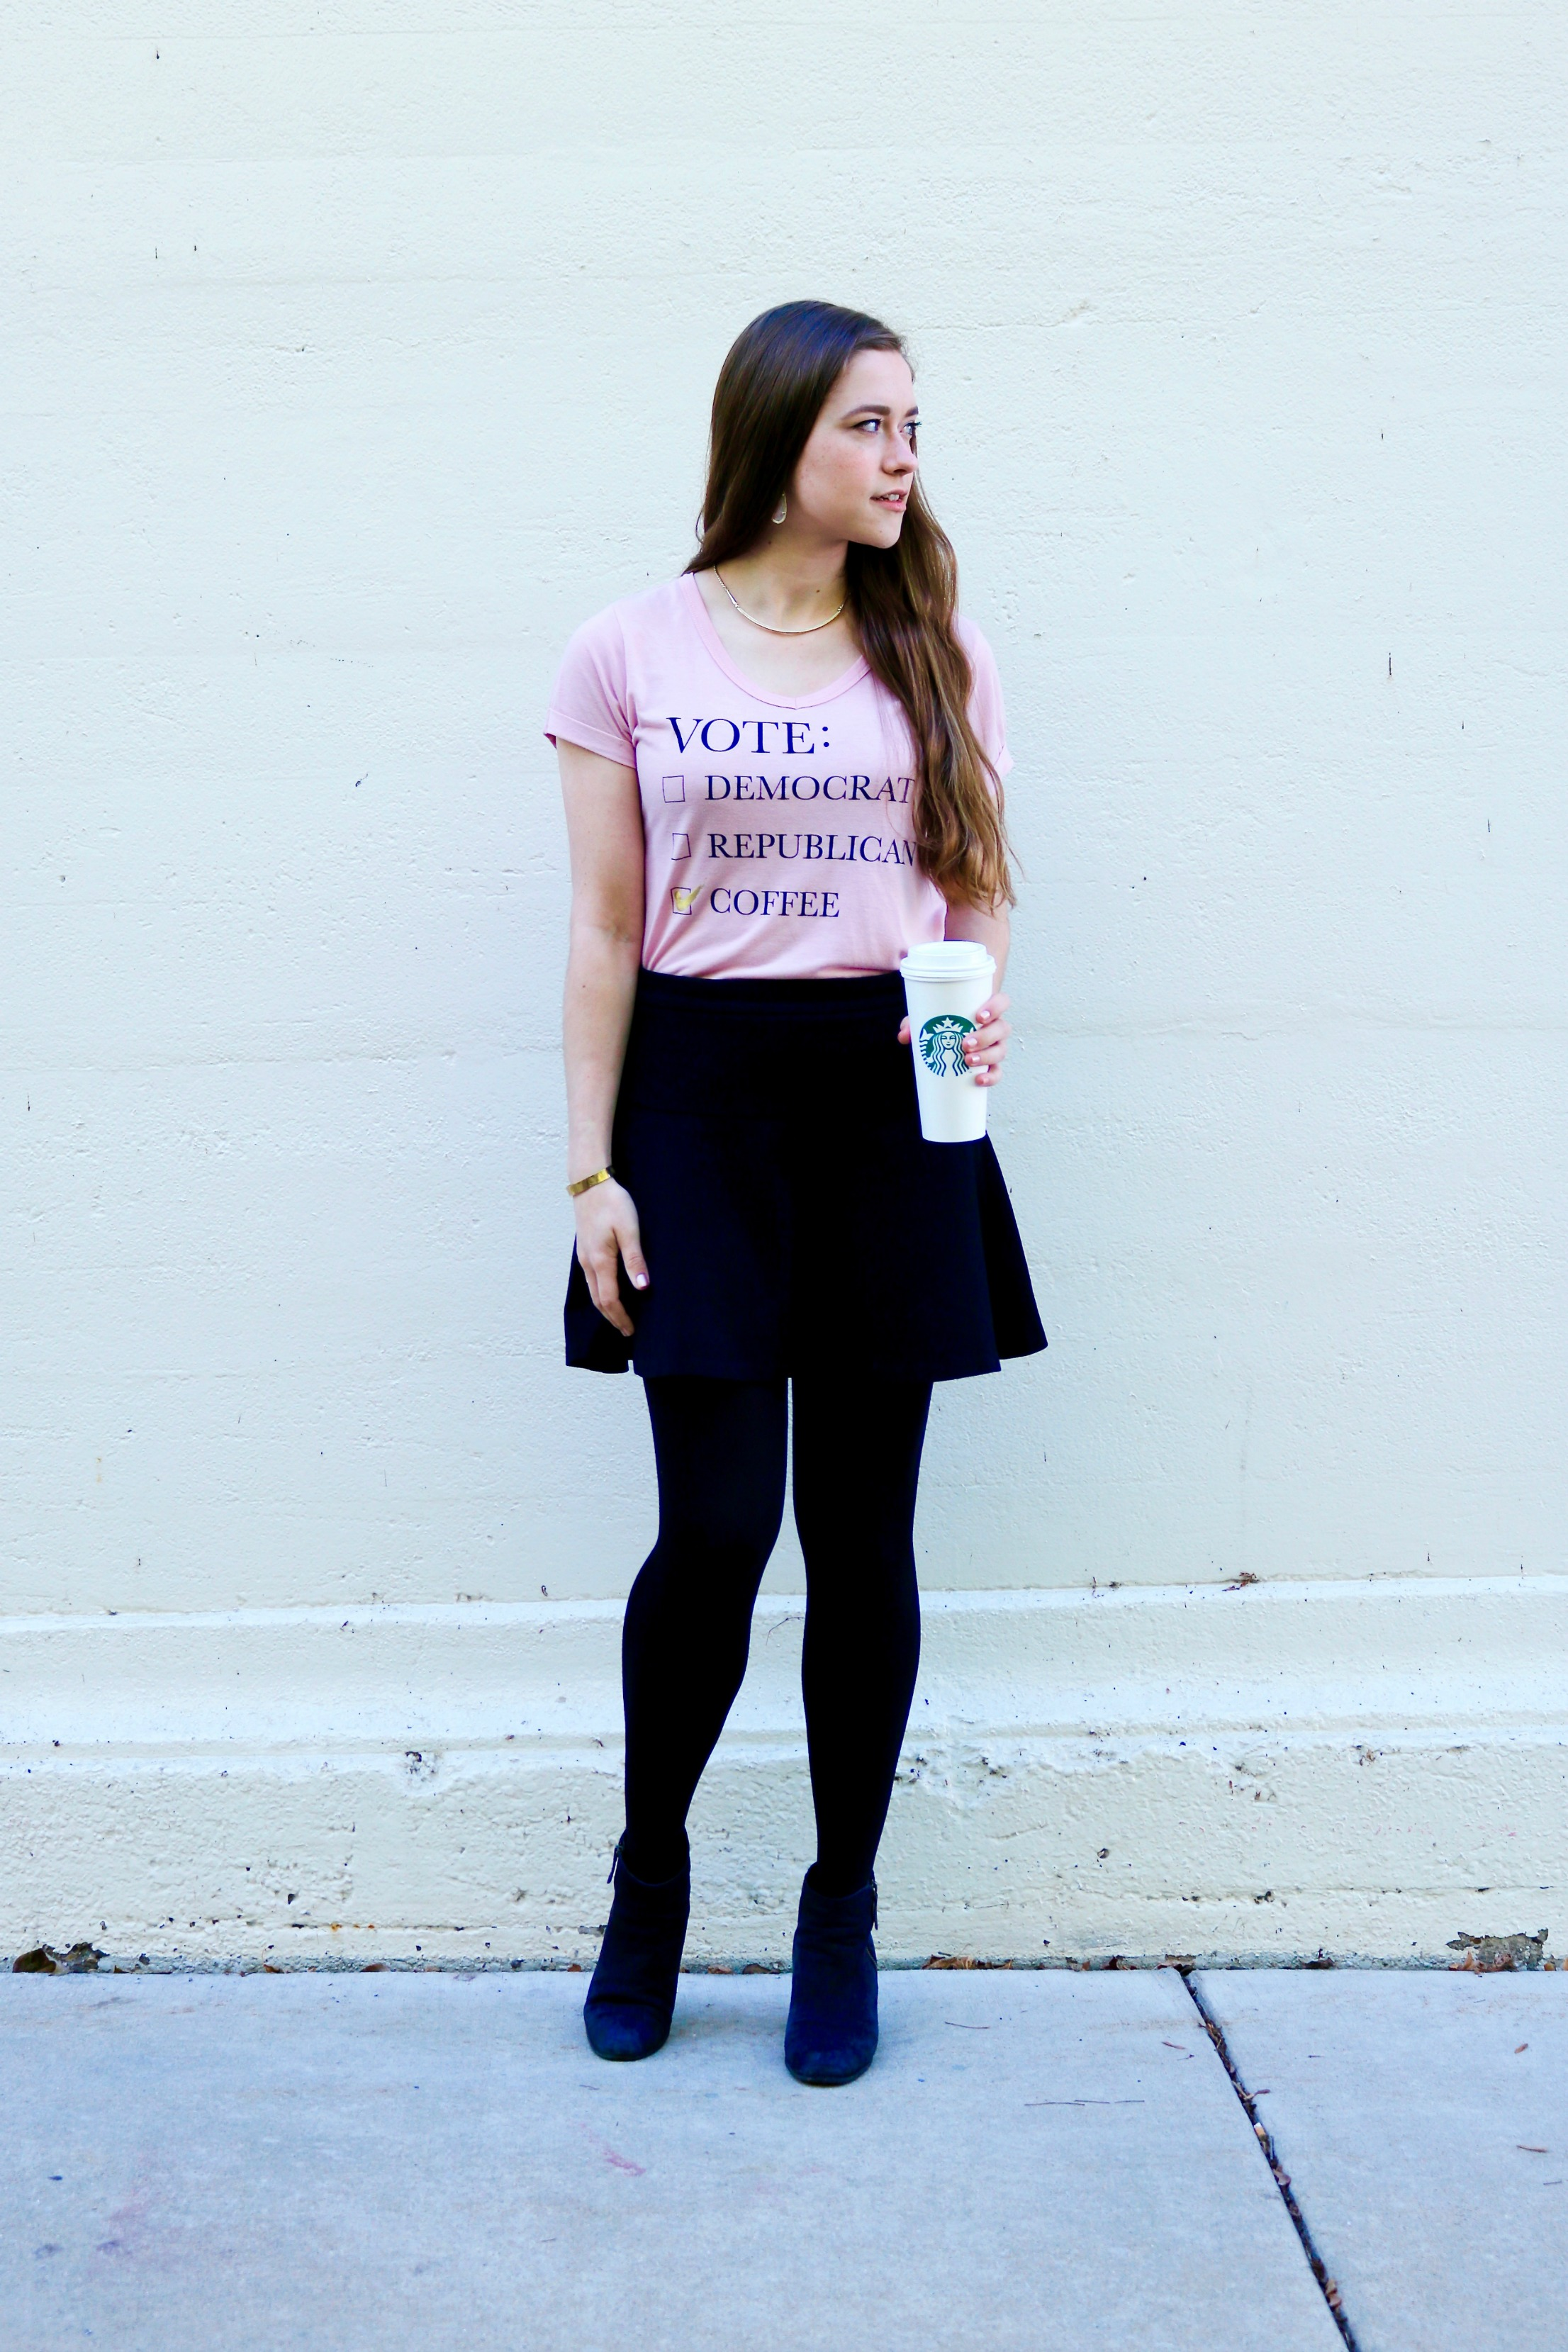 bowtiful-life-vote-coffee-ootd-www-bowtifullife-com-2